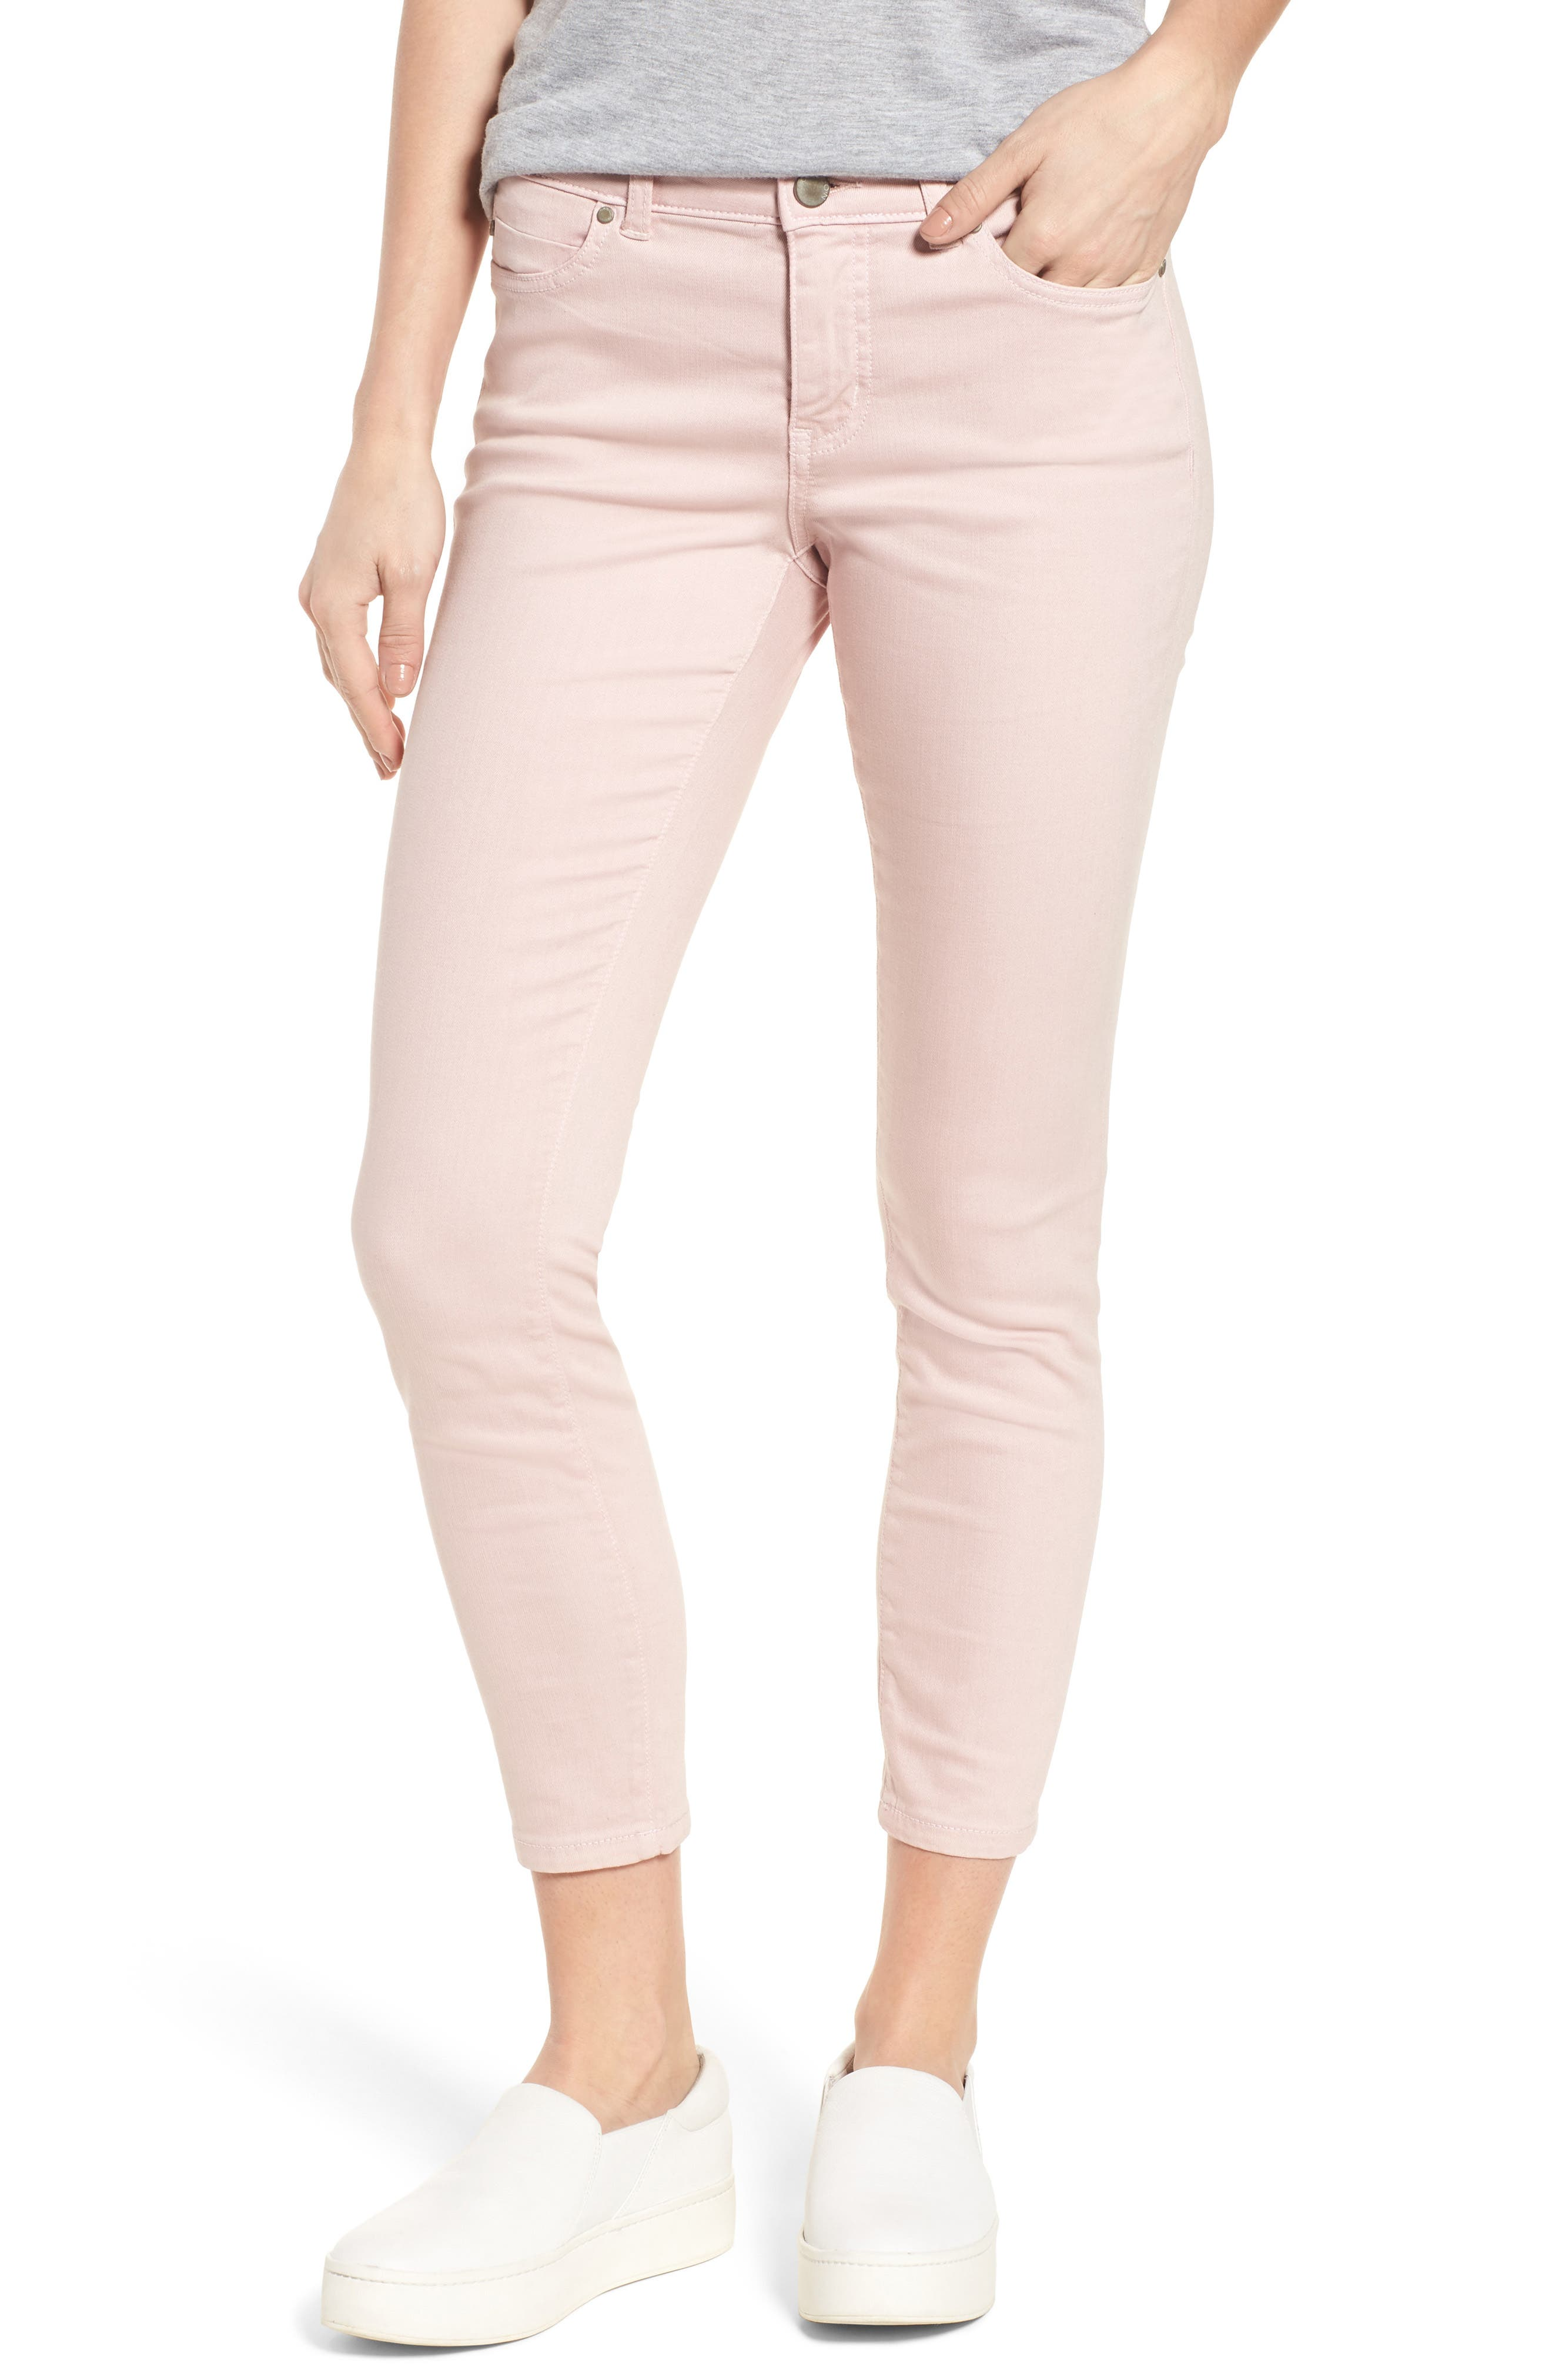 Skinny Ankle Jeans,                         Main,                         color, Pink Puff